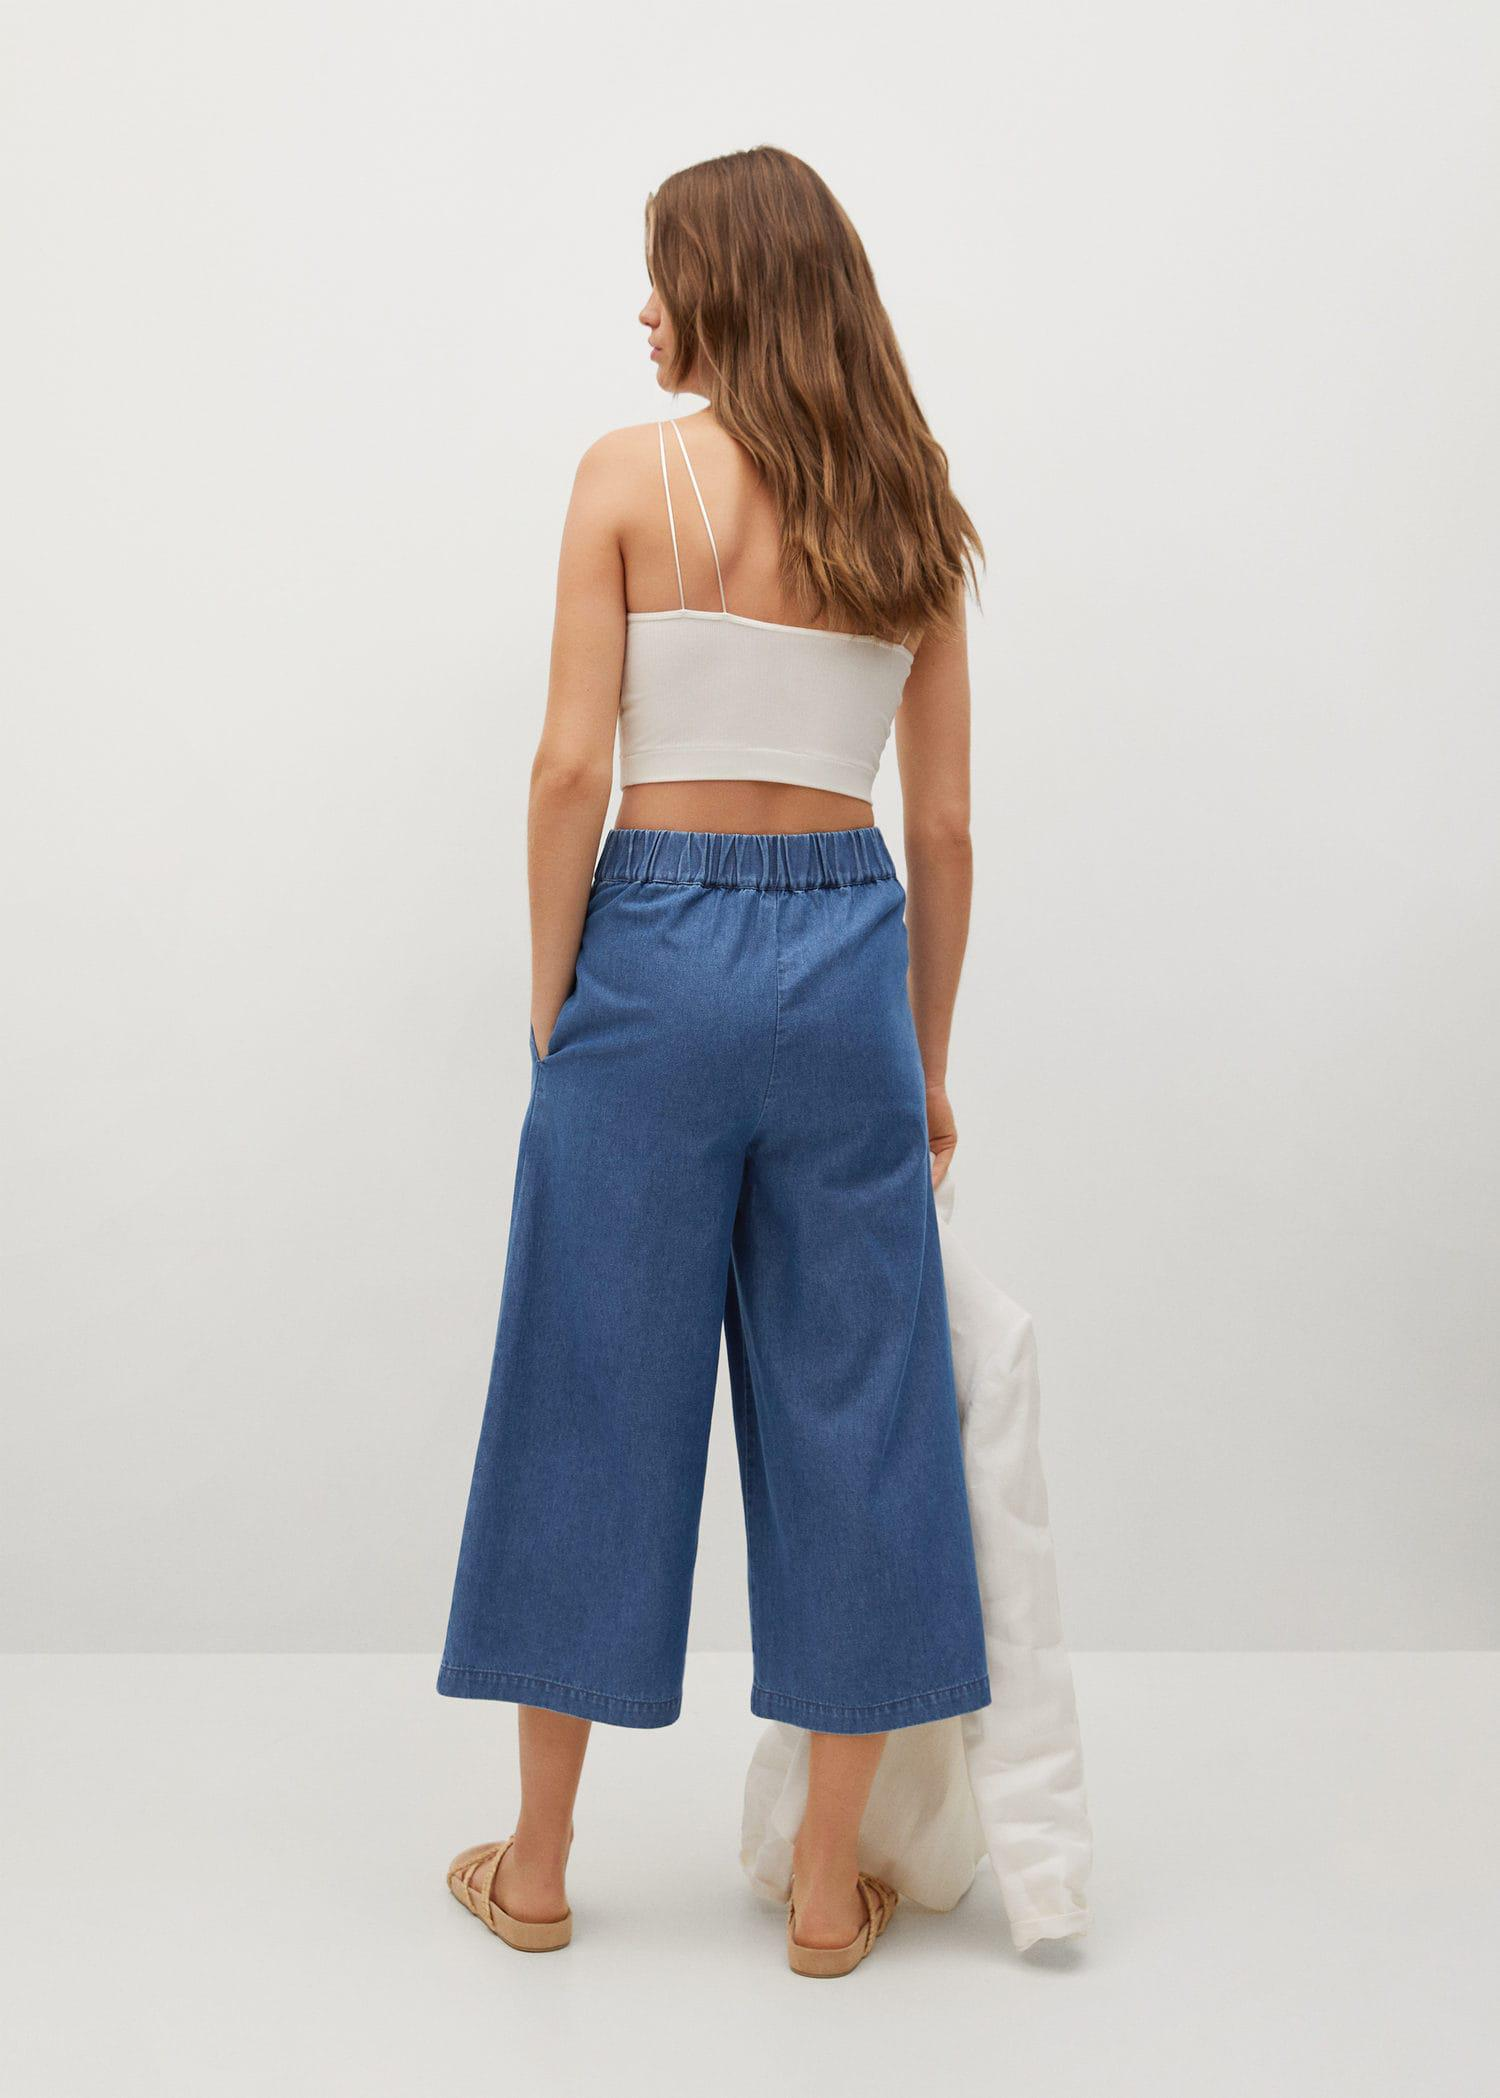 Pleated culottes pants 2